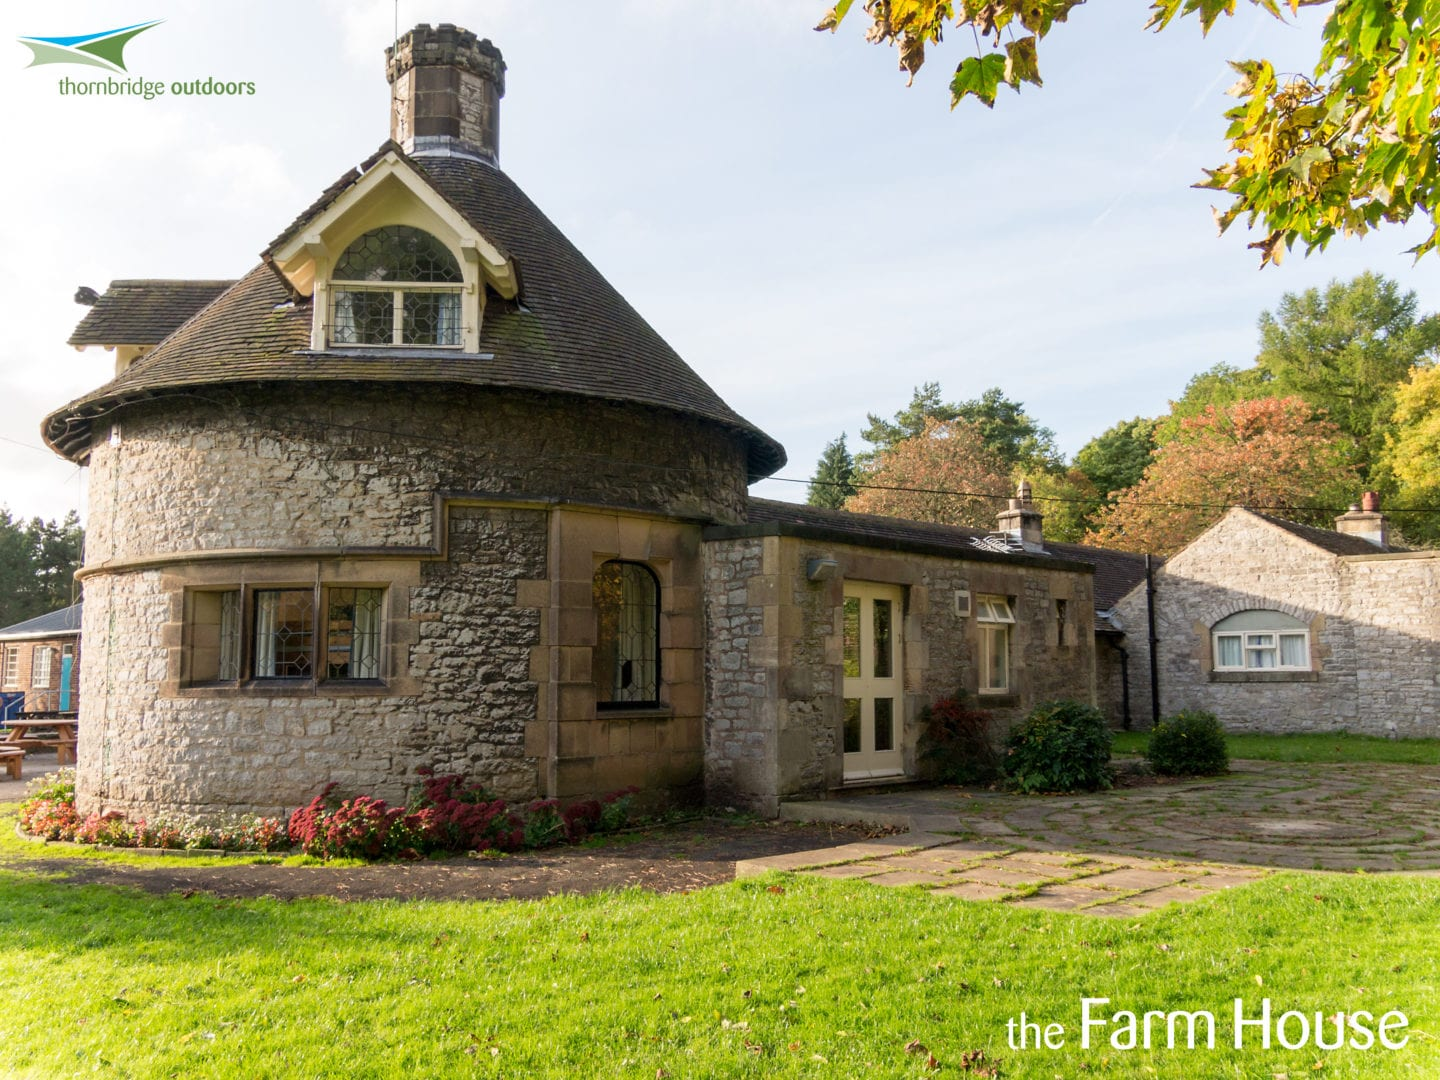 The Farm House at Thornbridge Outdoors